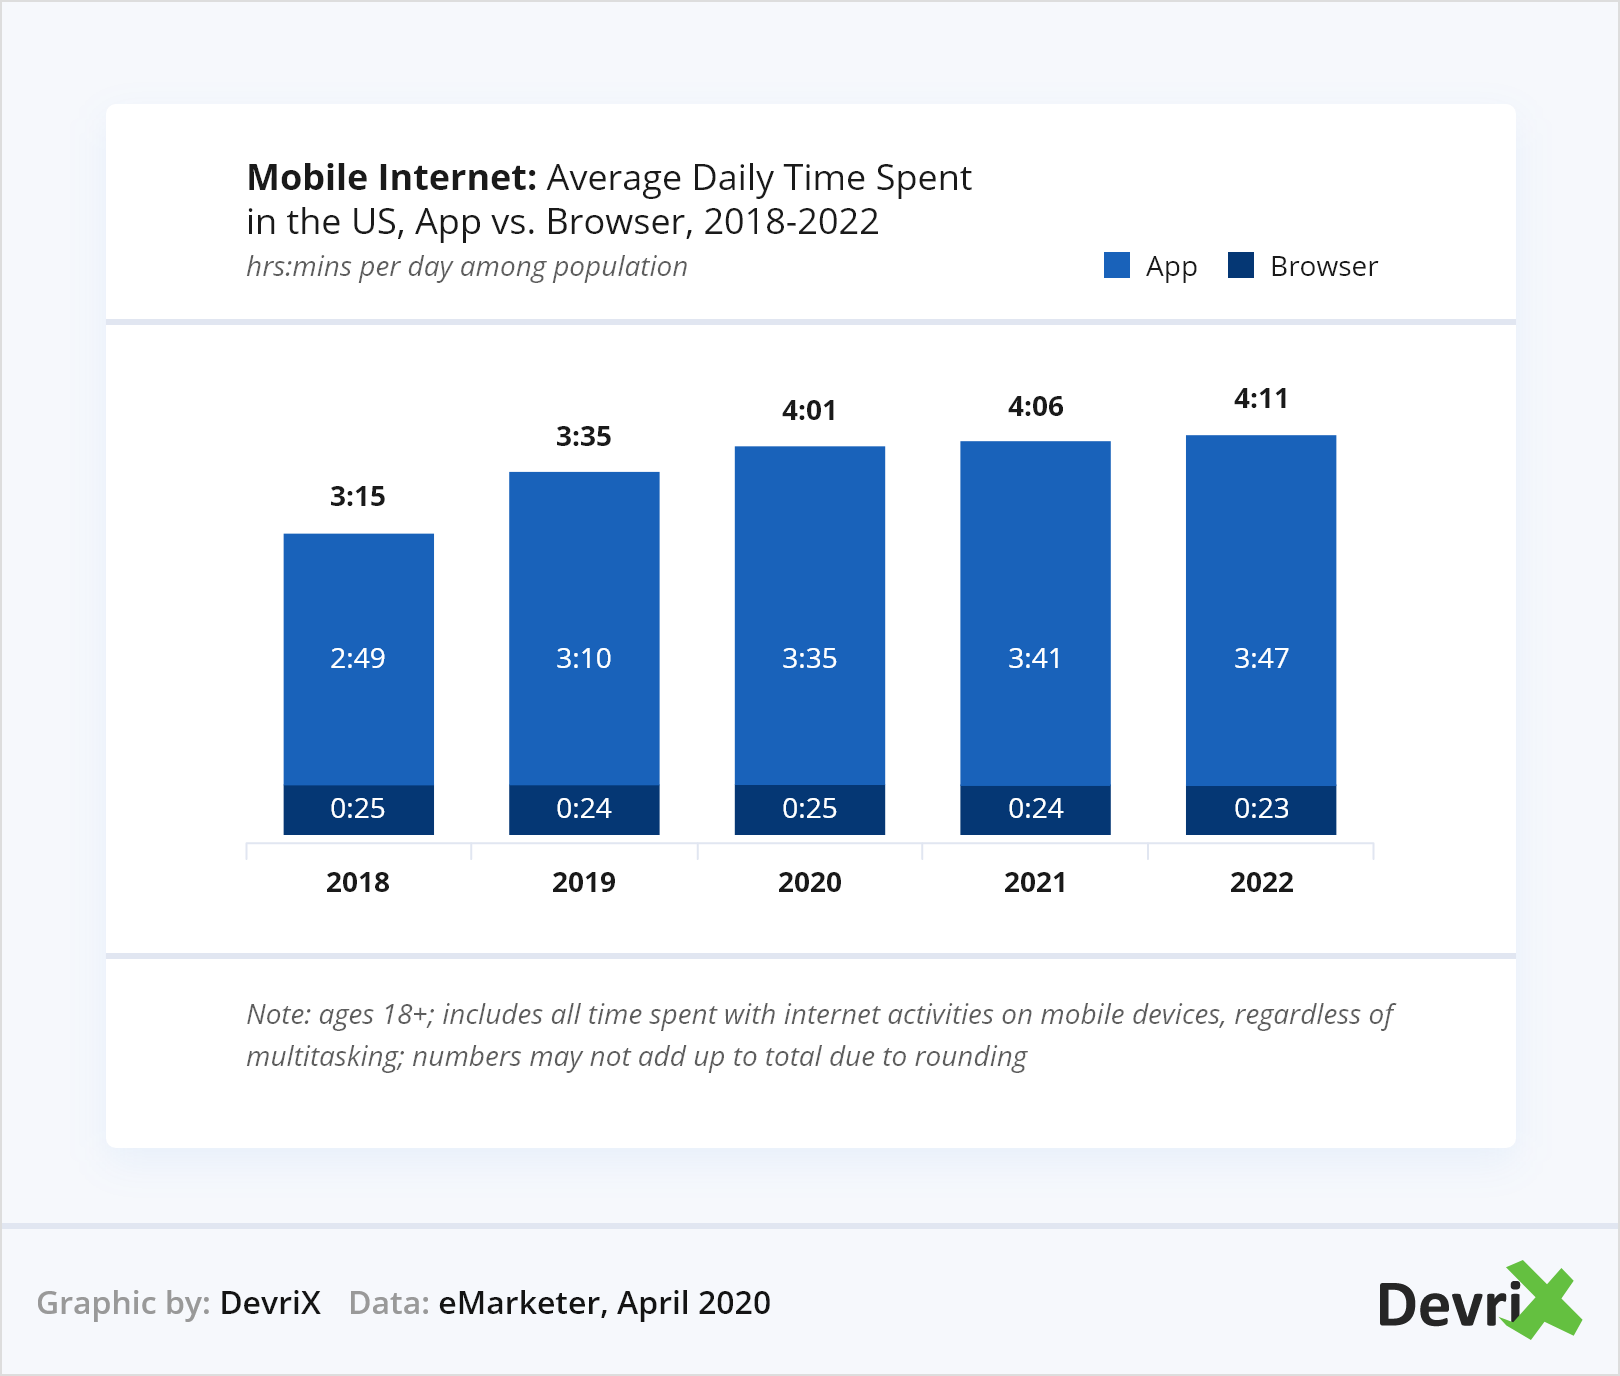 Mobile Internet Average Daily Time Spent in the US, App vs. Browser, 2018-2022